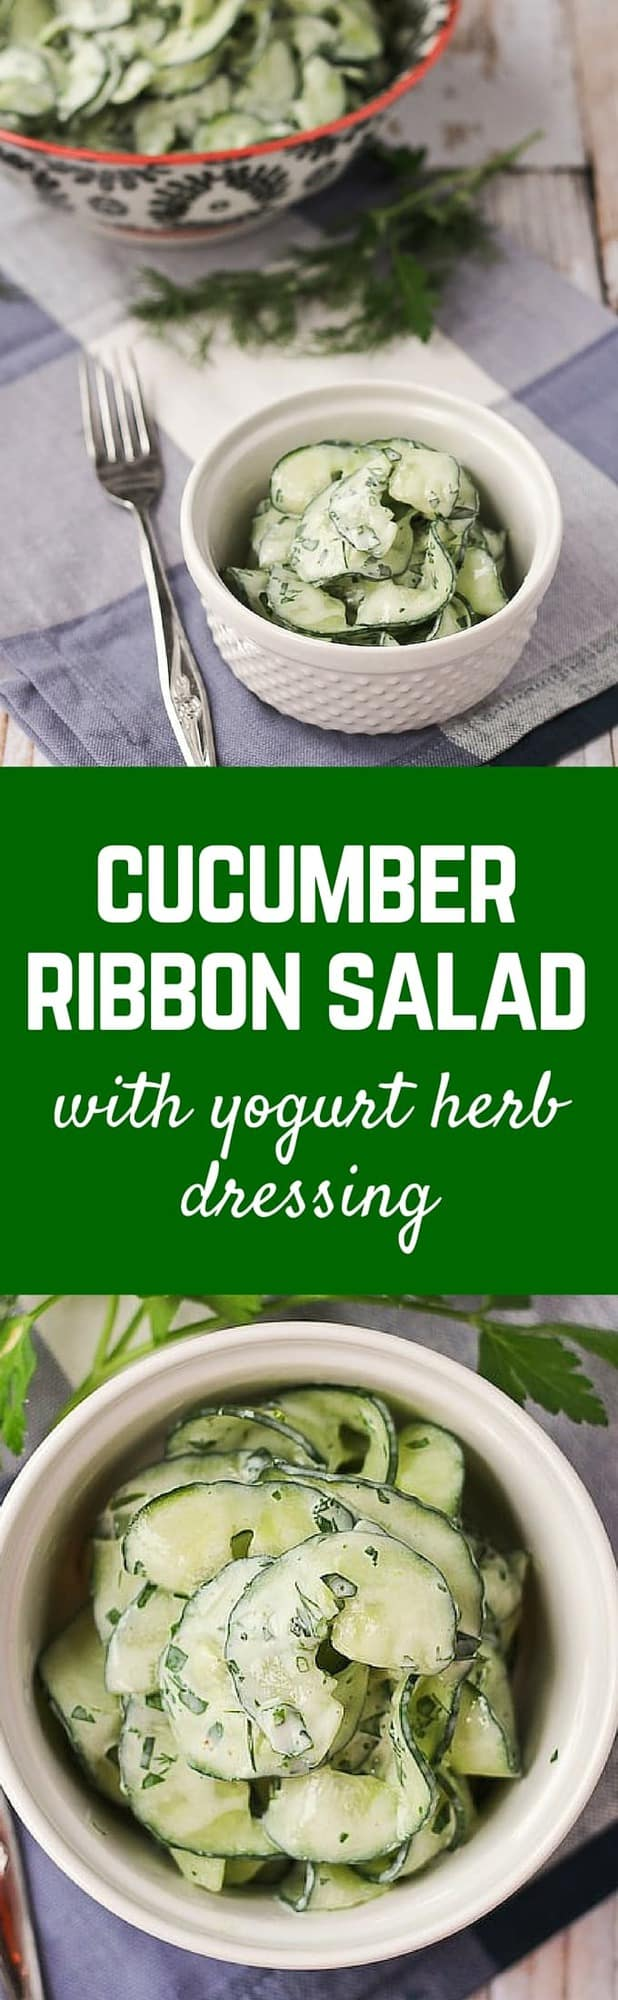 Cucumber Salad with Fat-Free Yogurt Herb Dressing - Get the easy salad recipe on RachelCooks.com